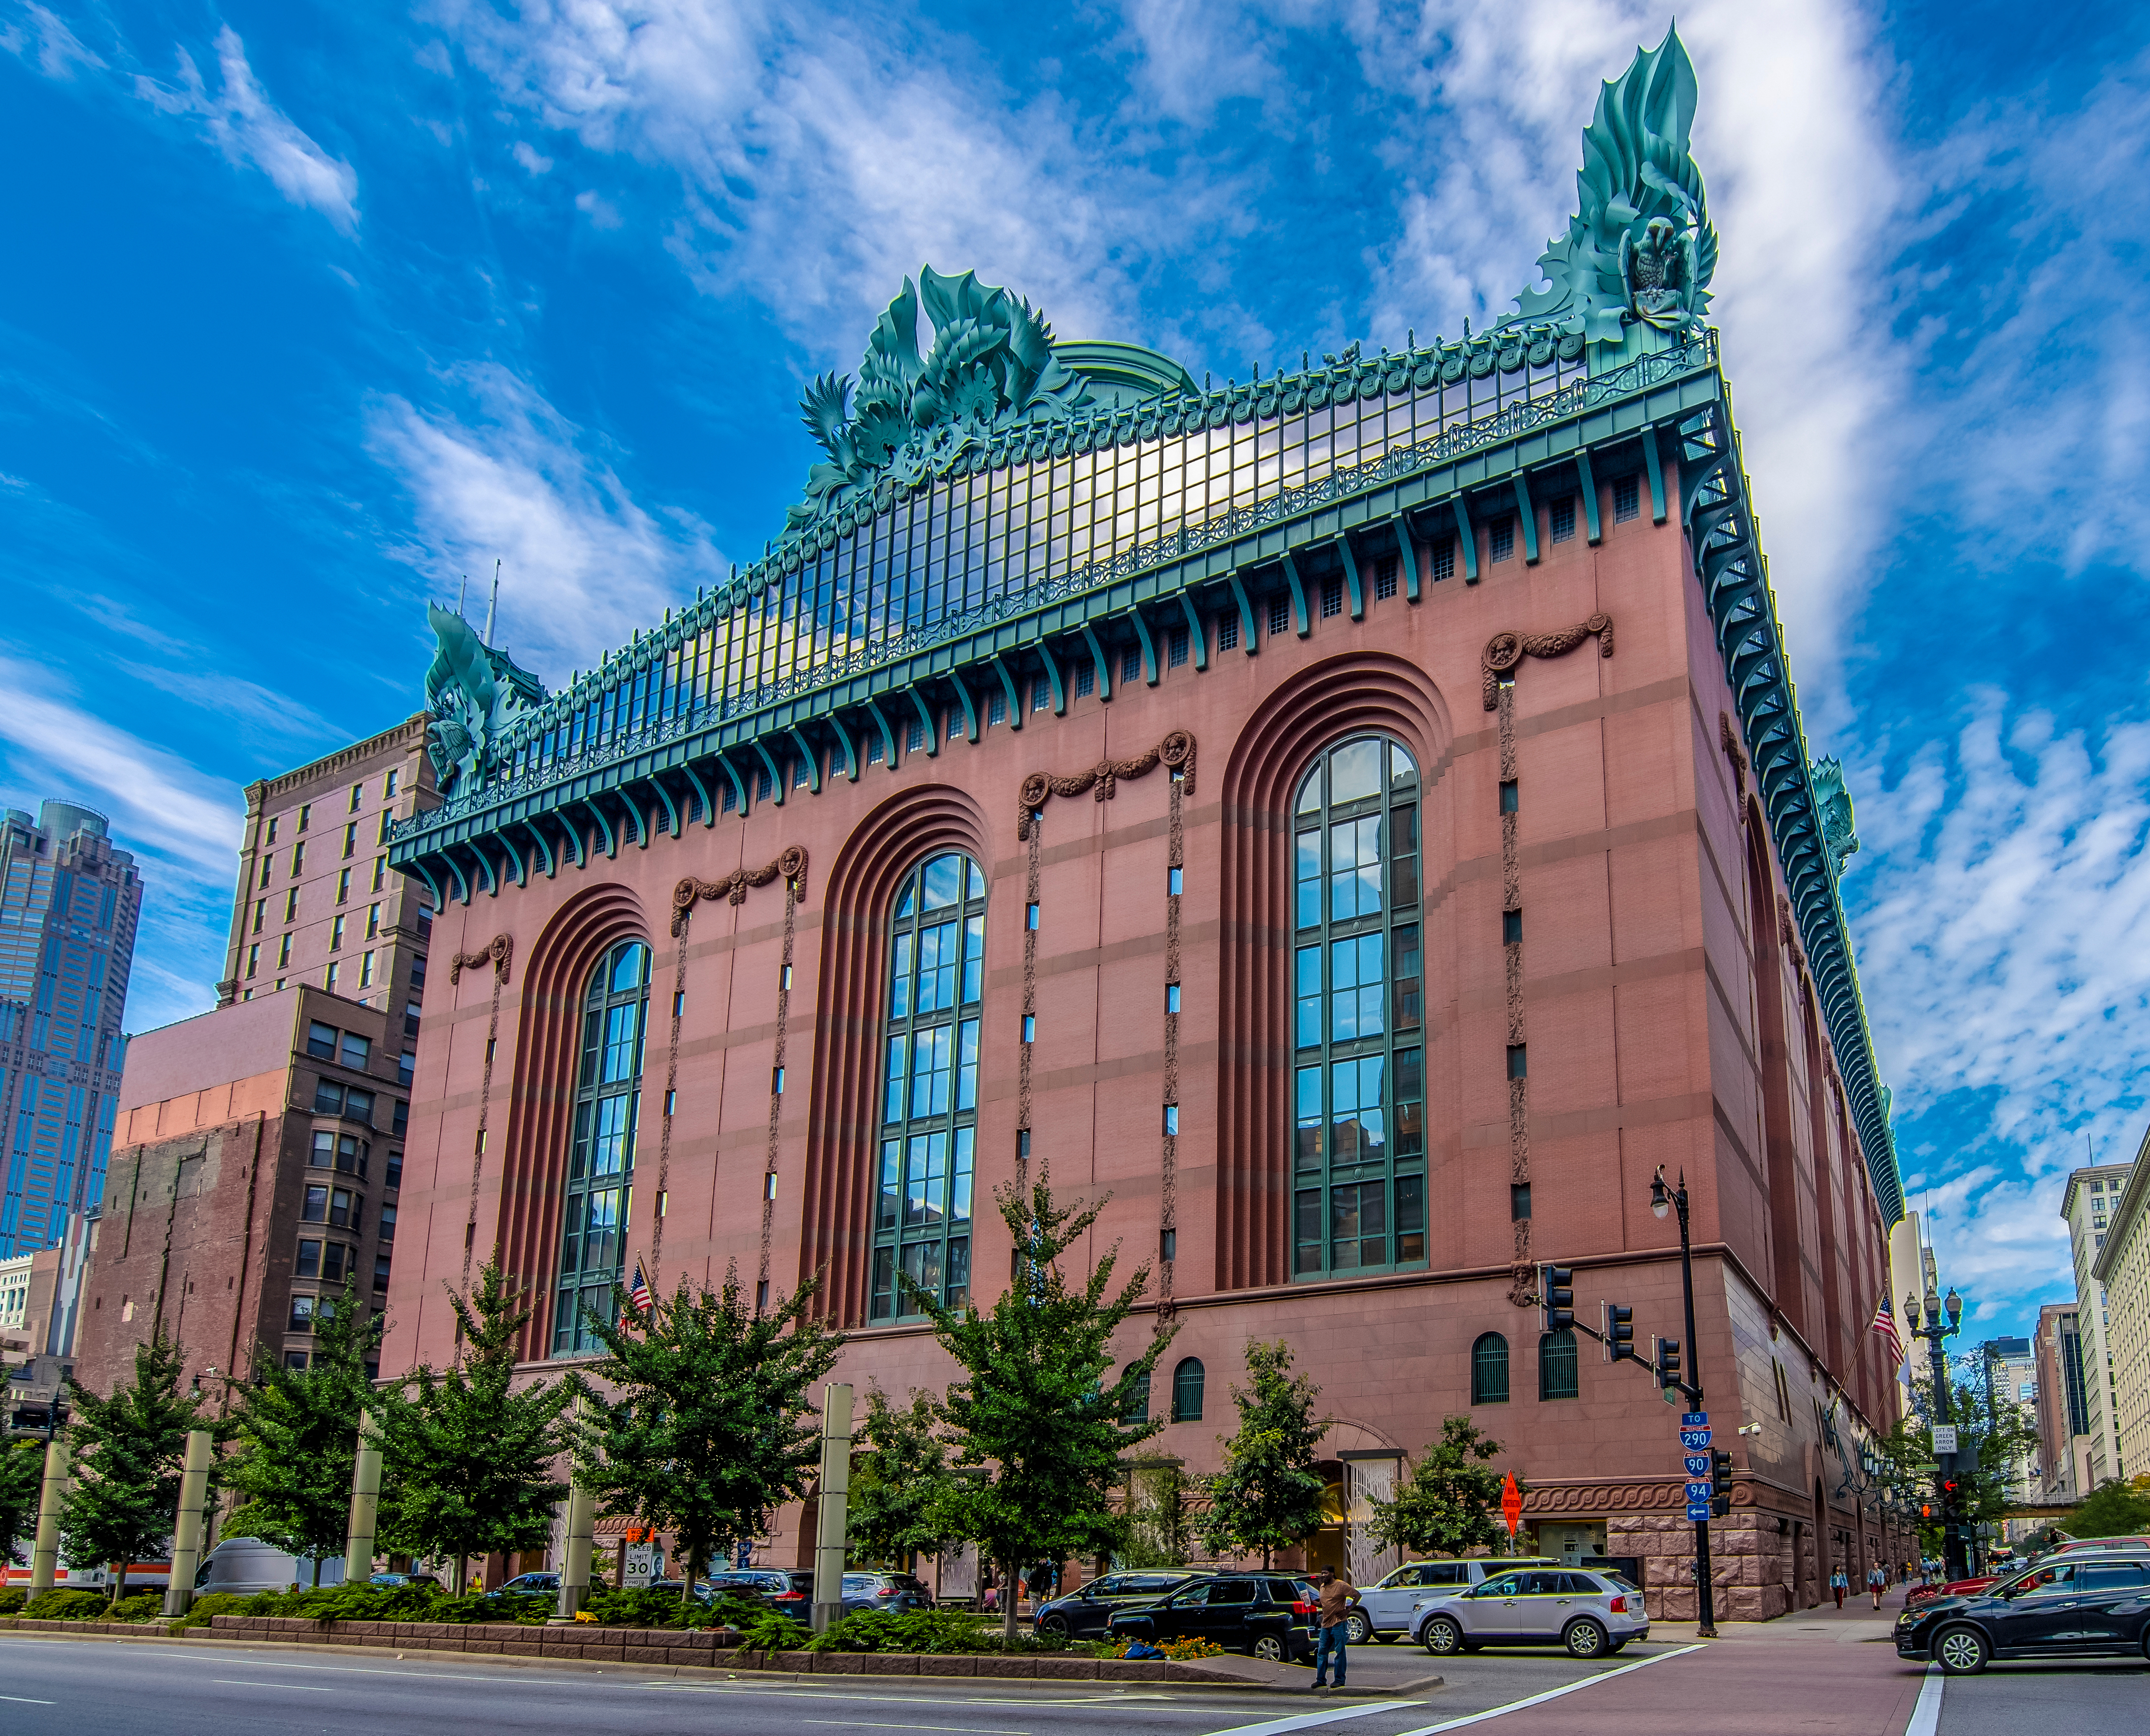 13 beautiful, historic public libraries in Chicago